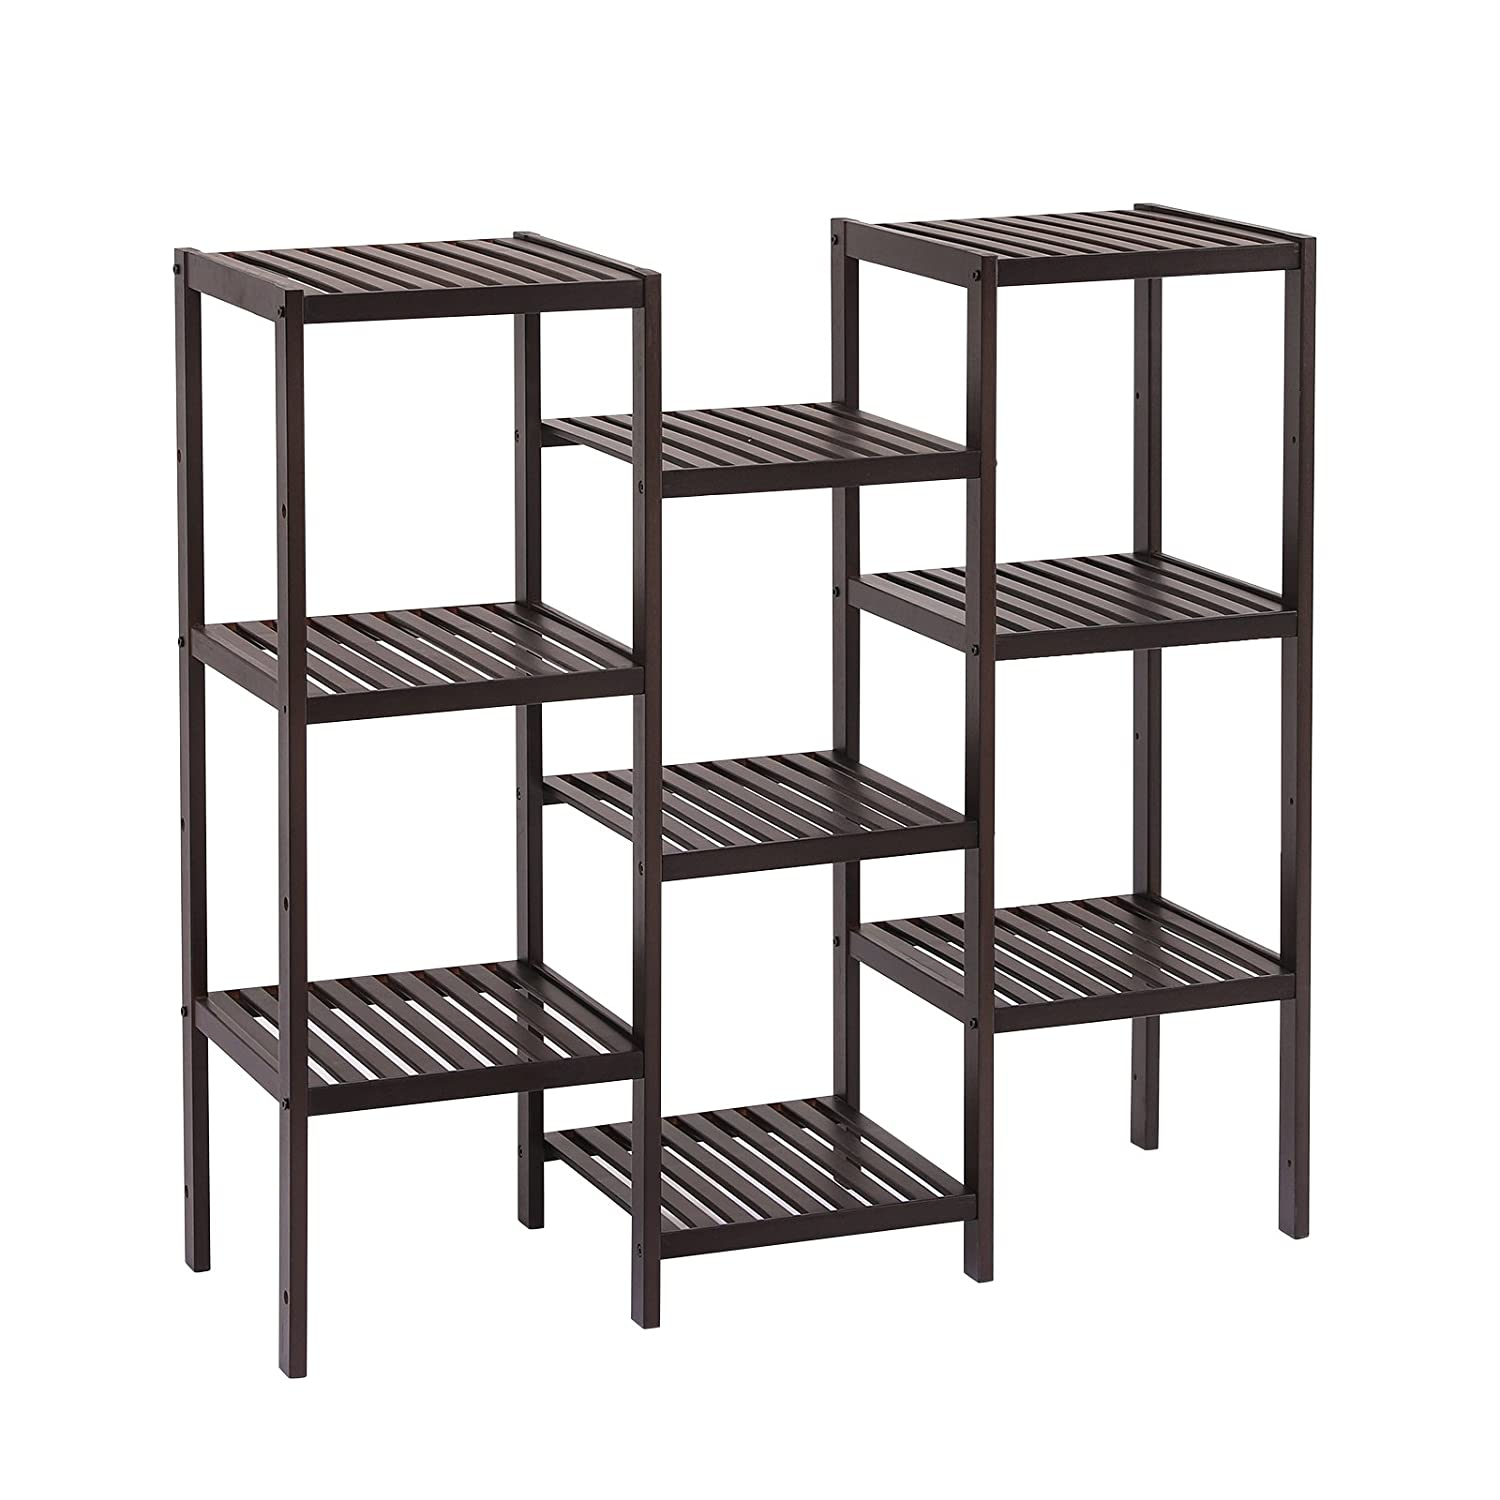 Amazoncom Songmics Bamboo Customizable Plant Stand Shelf 9 Tier Flower Pots